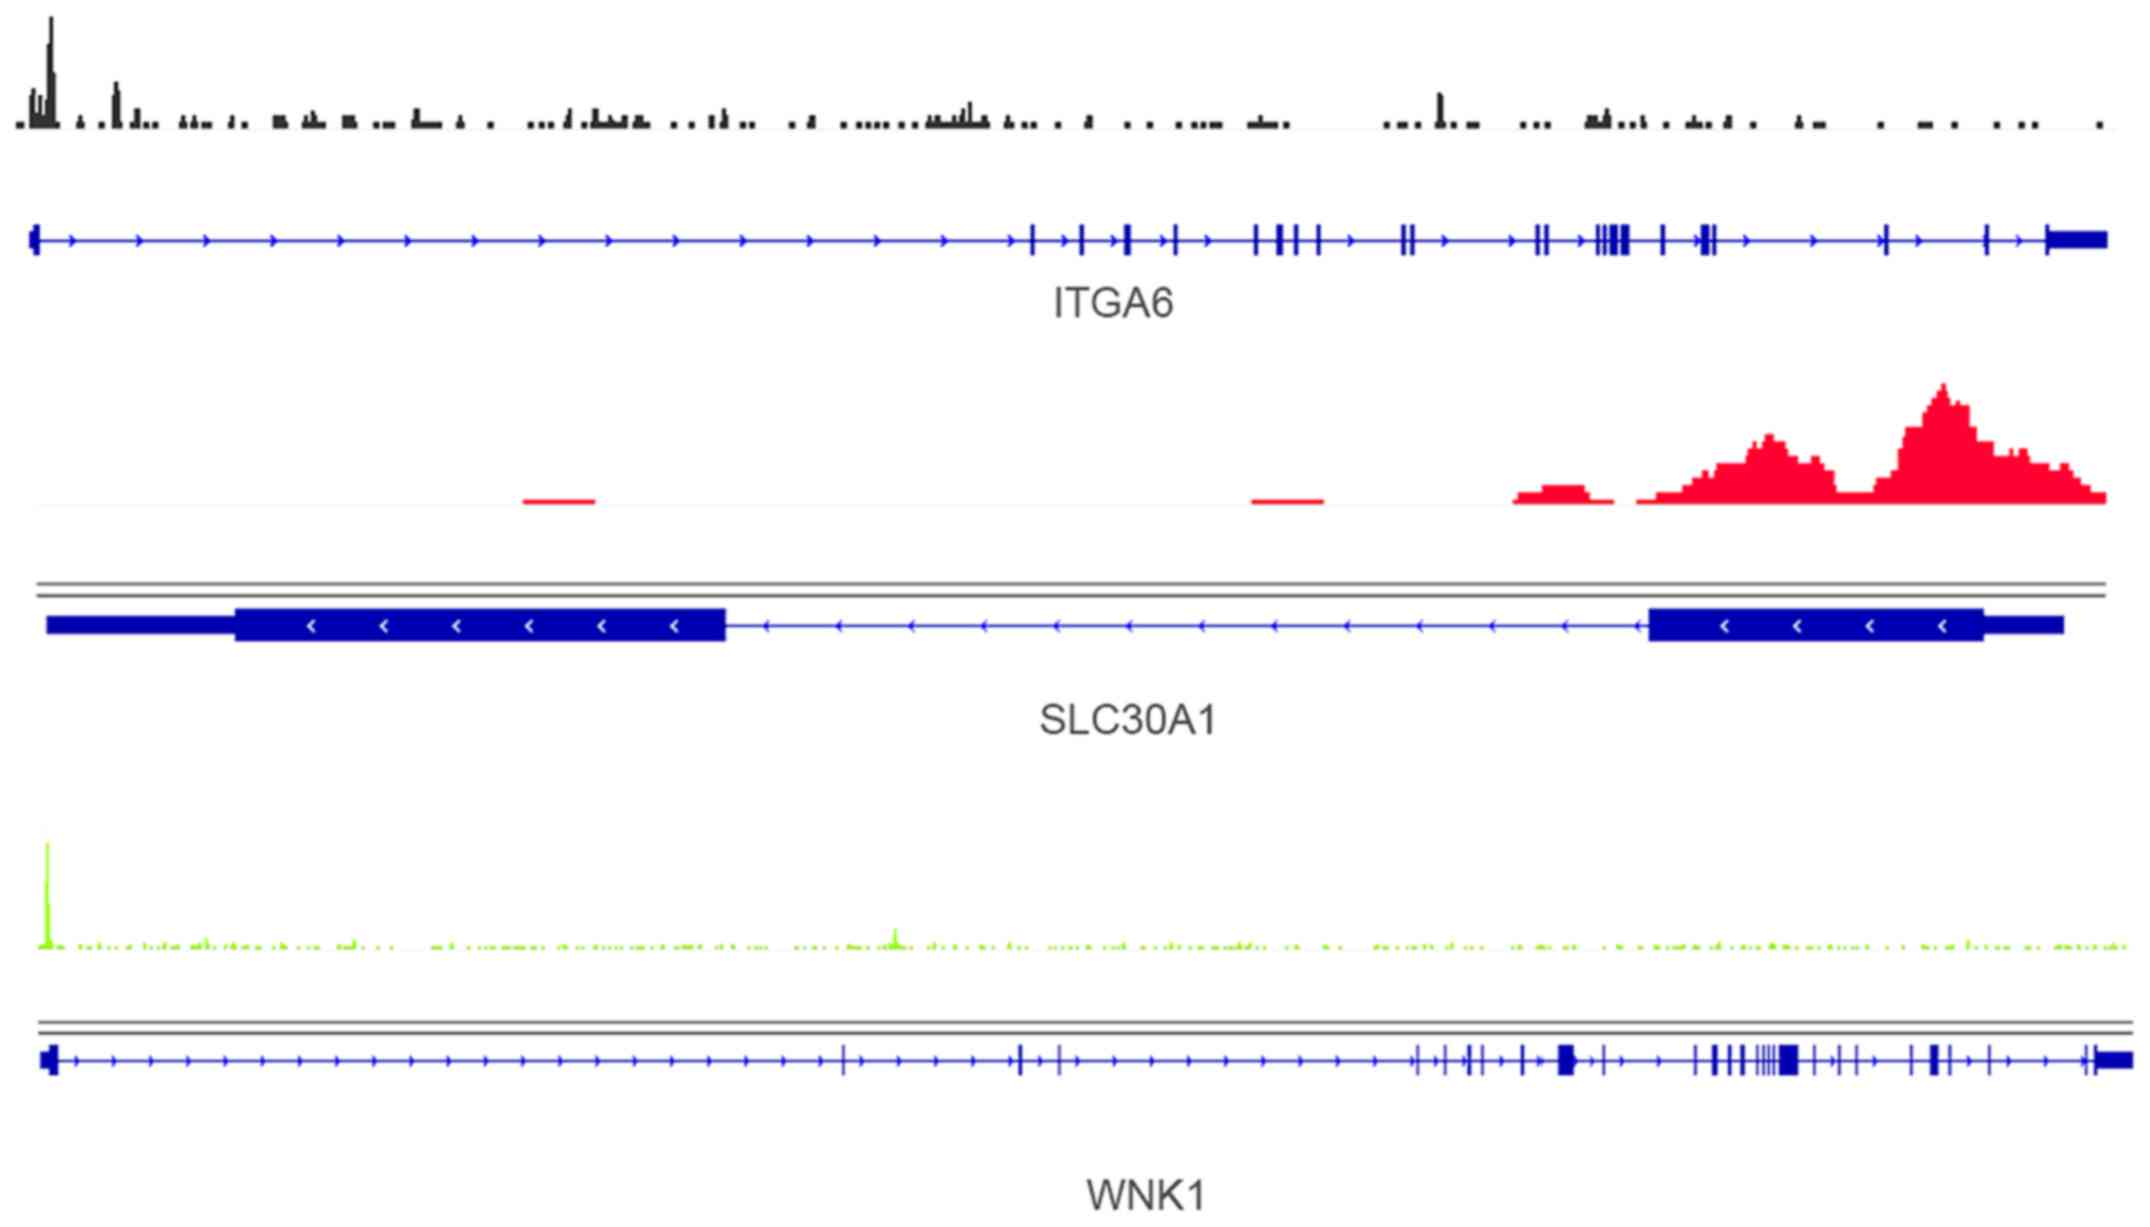 Combinedysis Of Chip Seq And Gene Microarray Datasets Identify The E2 Mediated Genes In Er